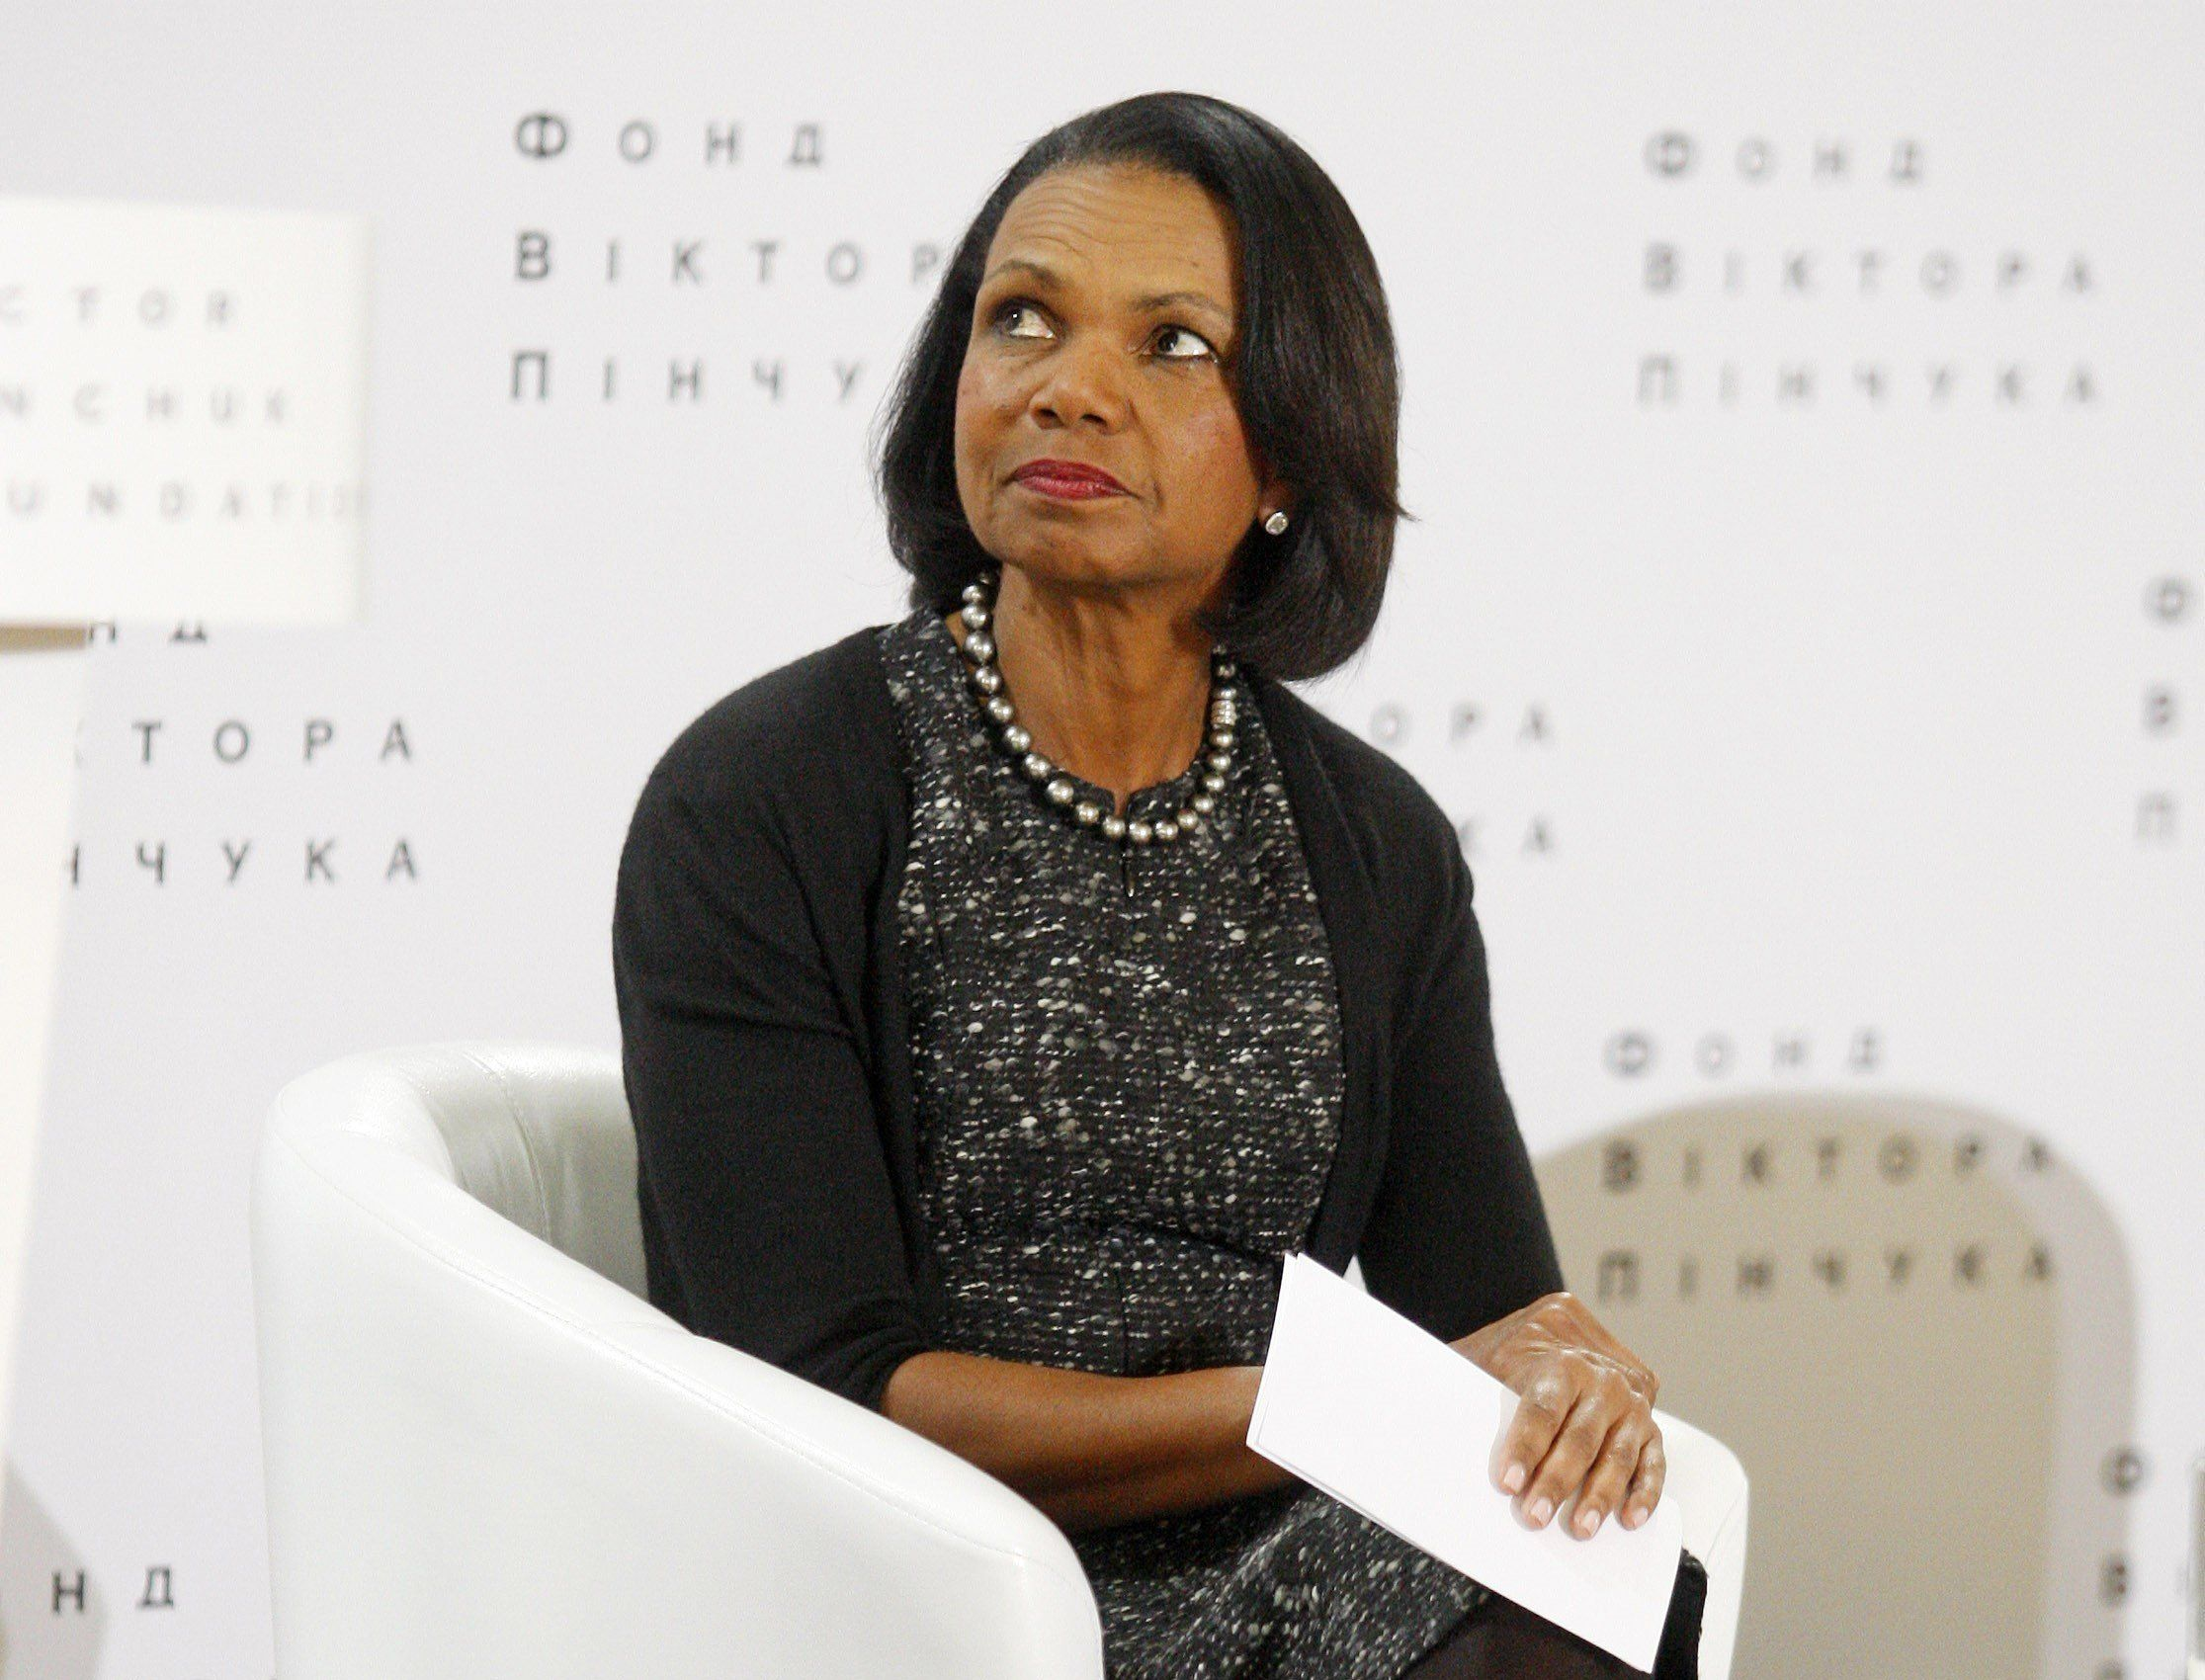 Condoleezza Rice's Response To Trump Calling Her A 'Bitch' Is All Of